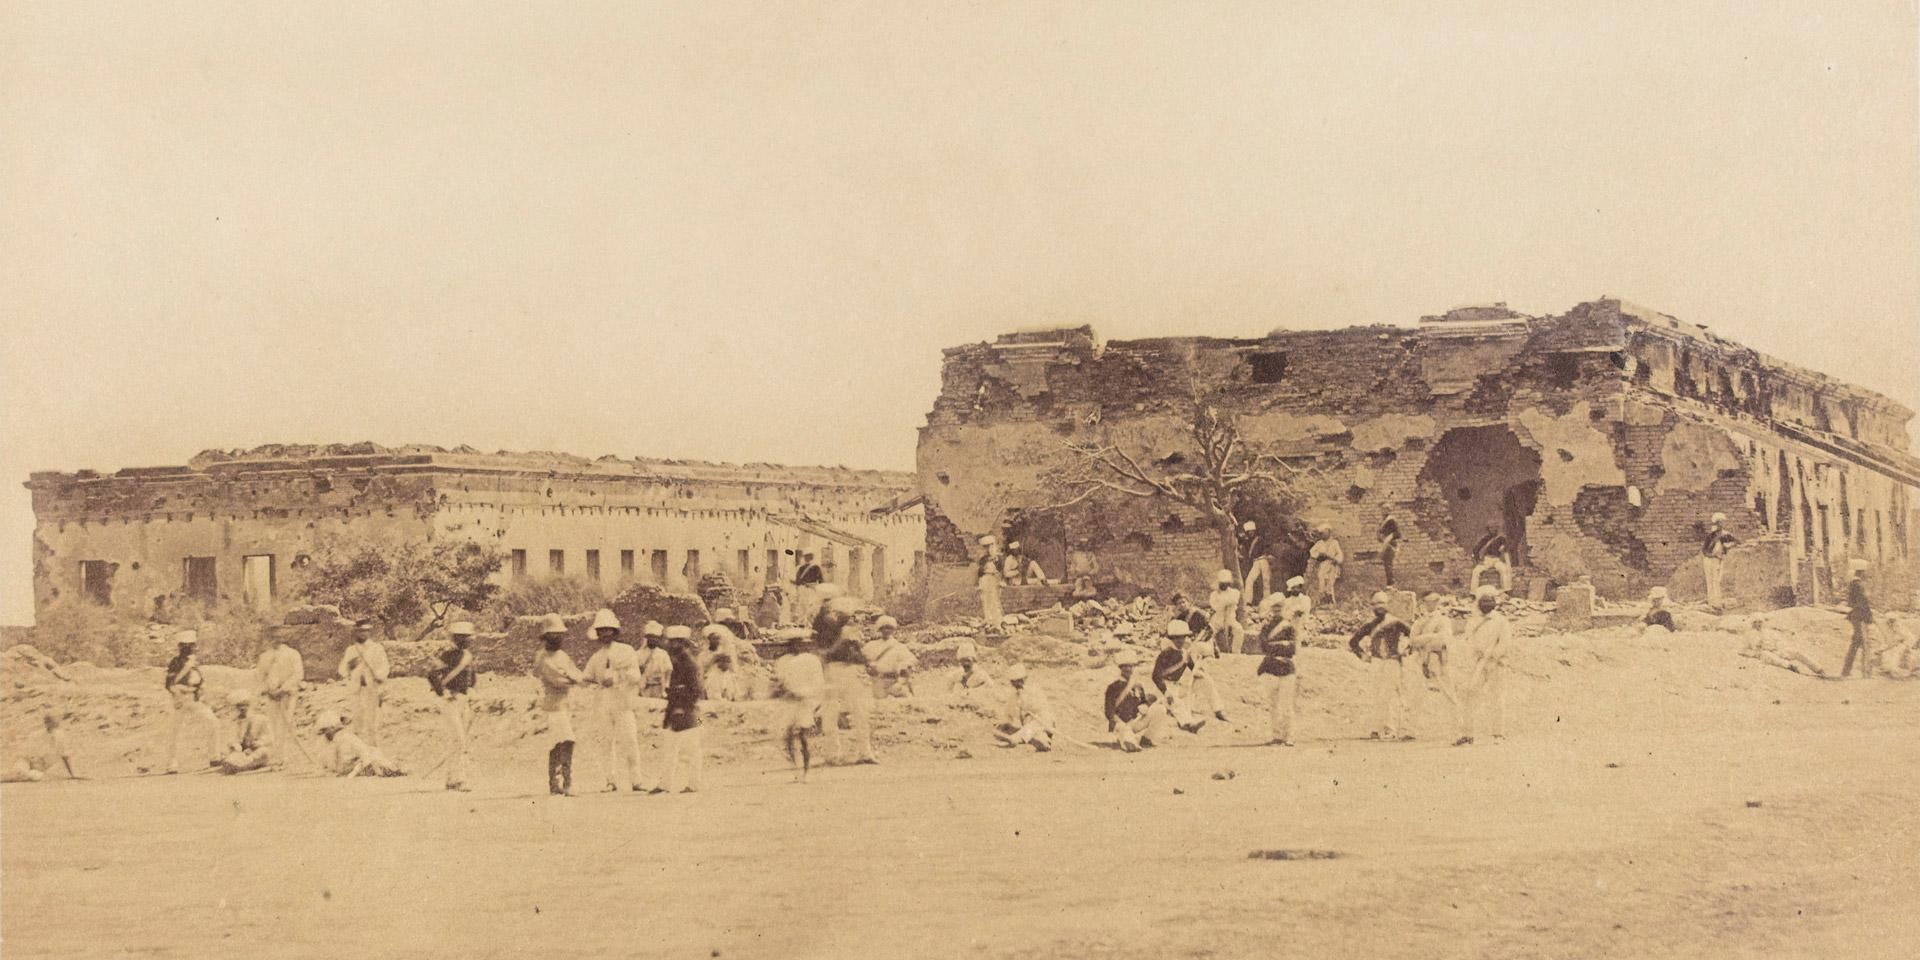 The ruins of General Wheeler's entrenchment at Cawnpore, 1858